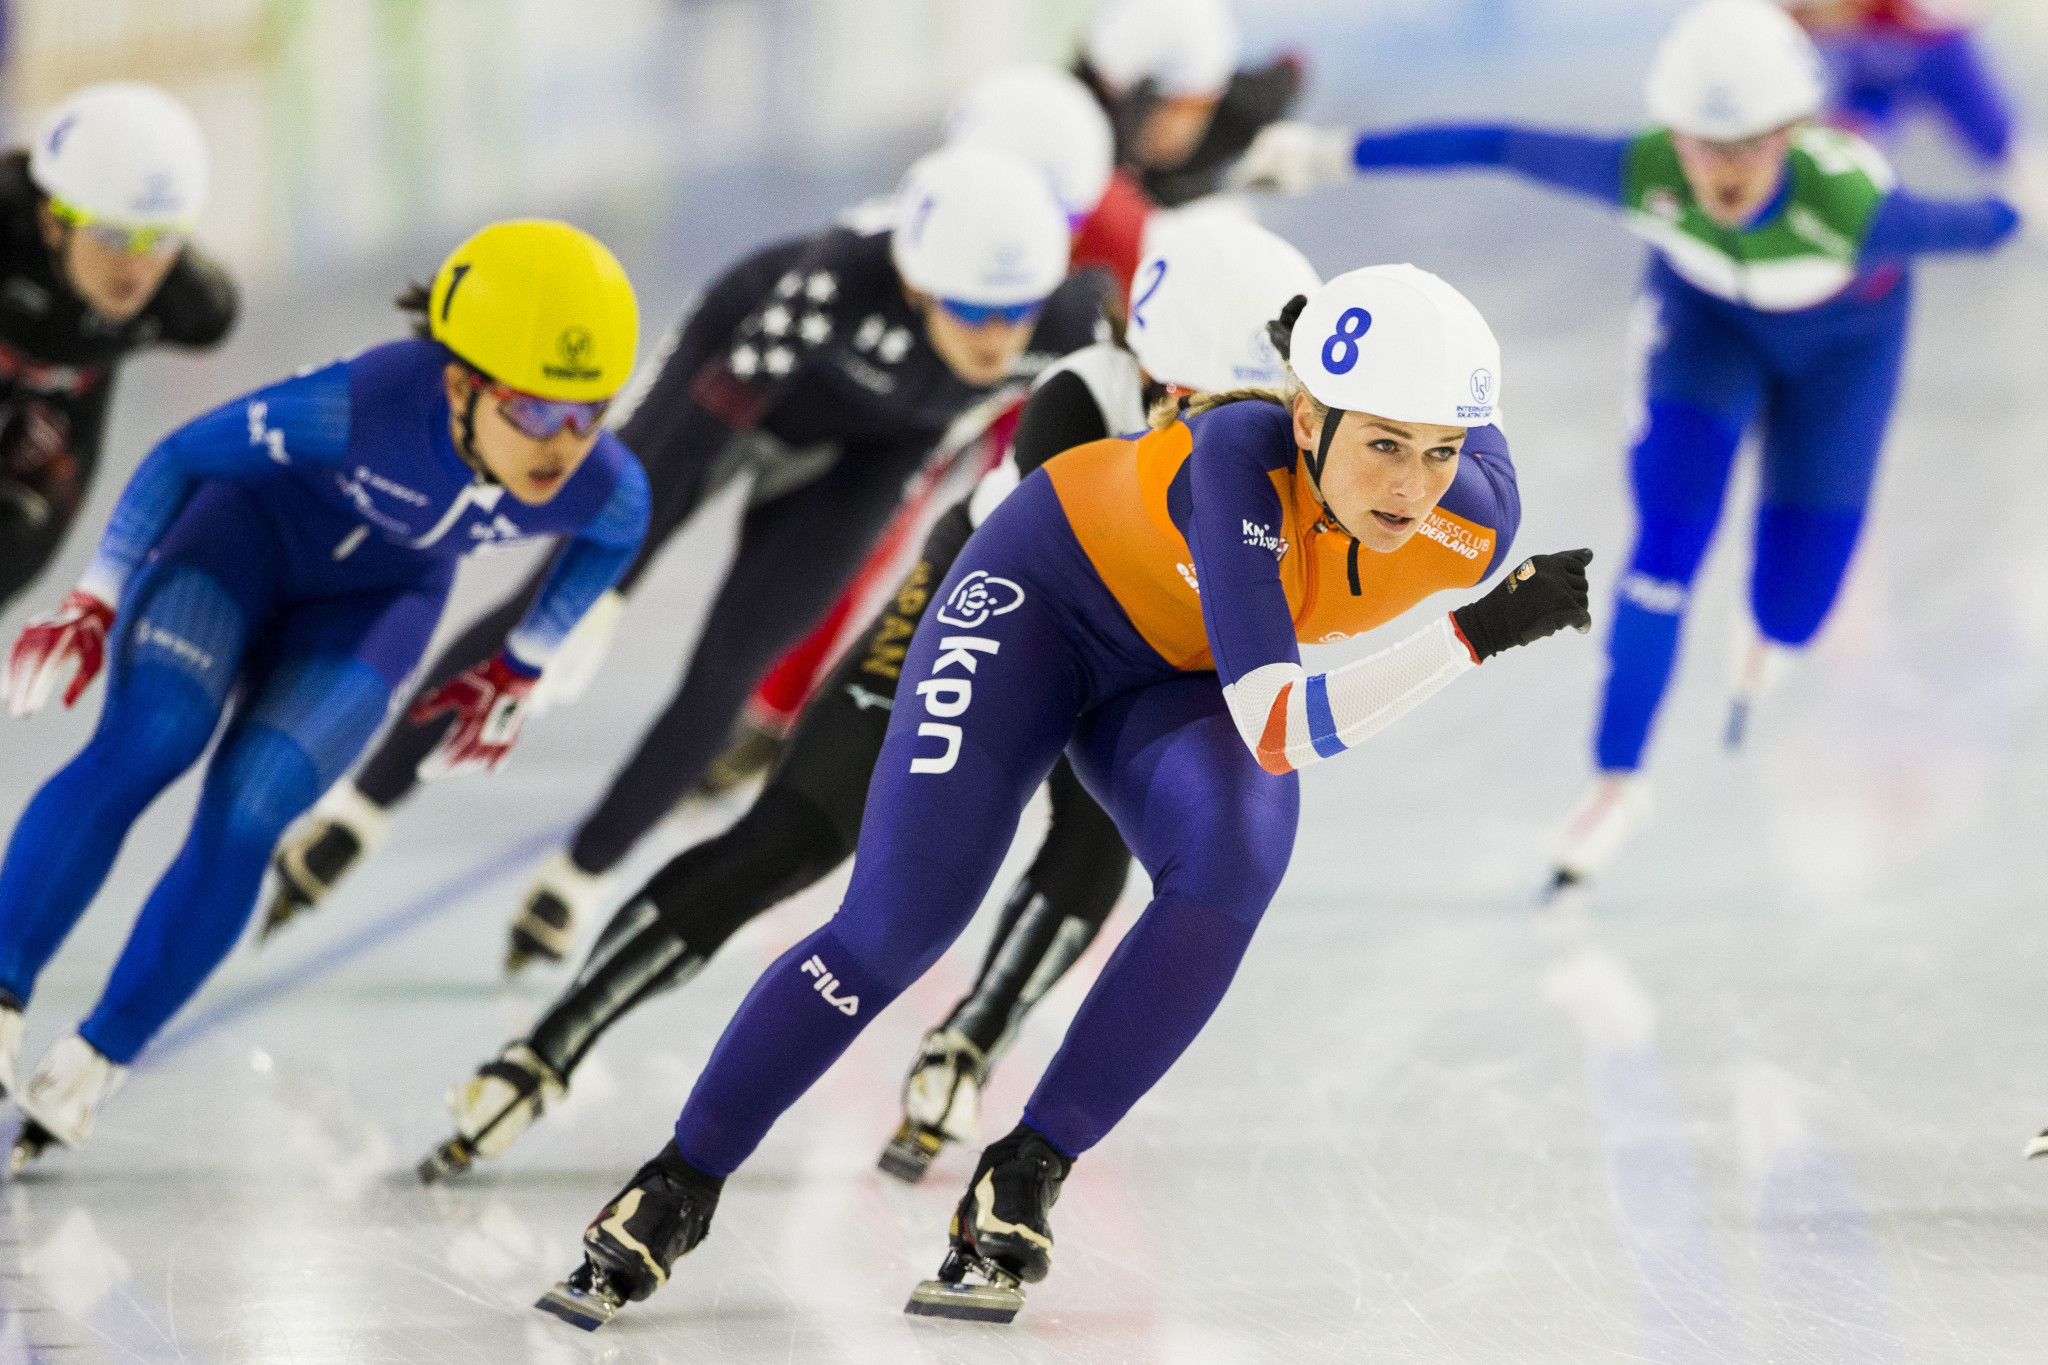 The ISU is evaluating alternative locations for the World Speed Skating Championships ©Getty Images